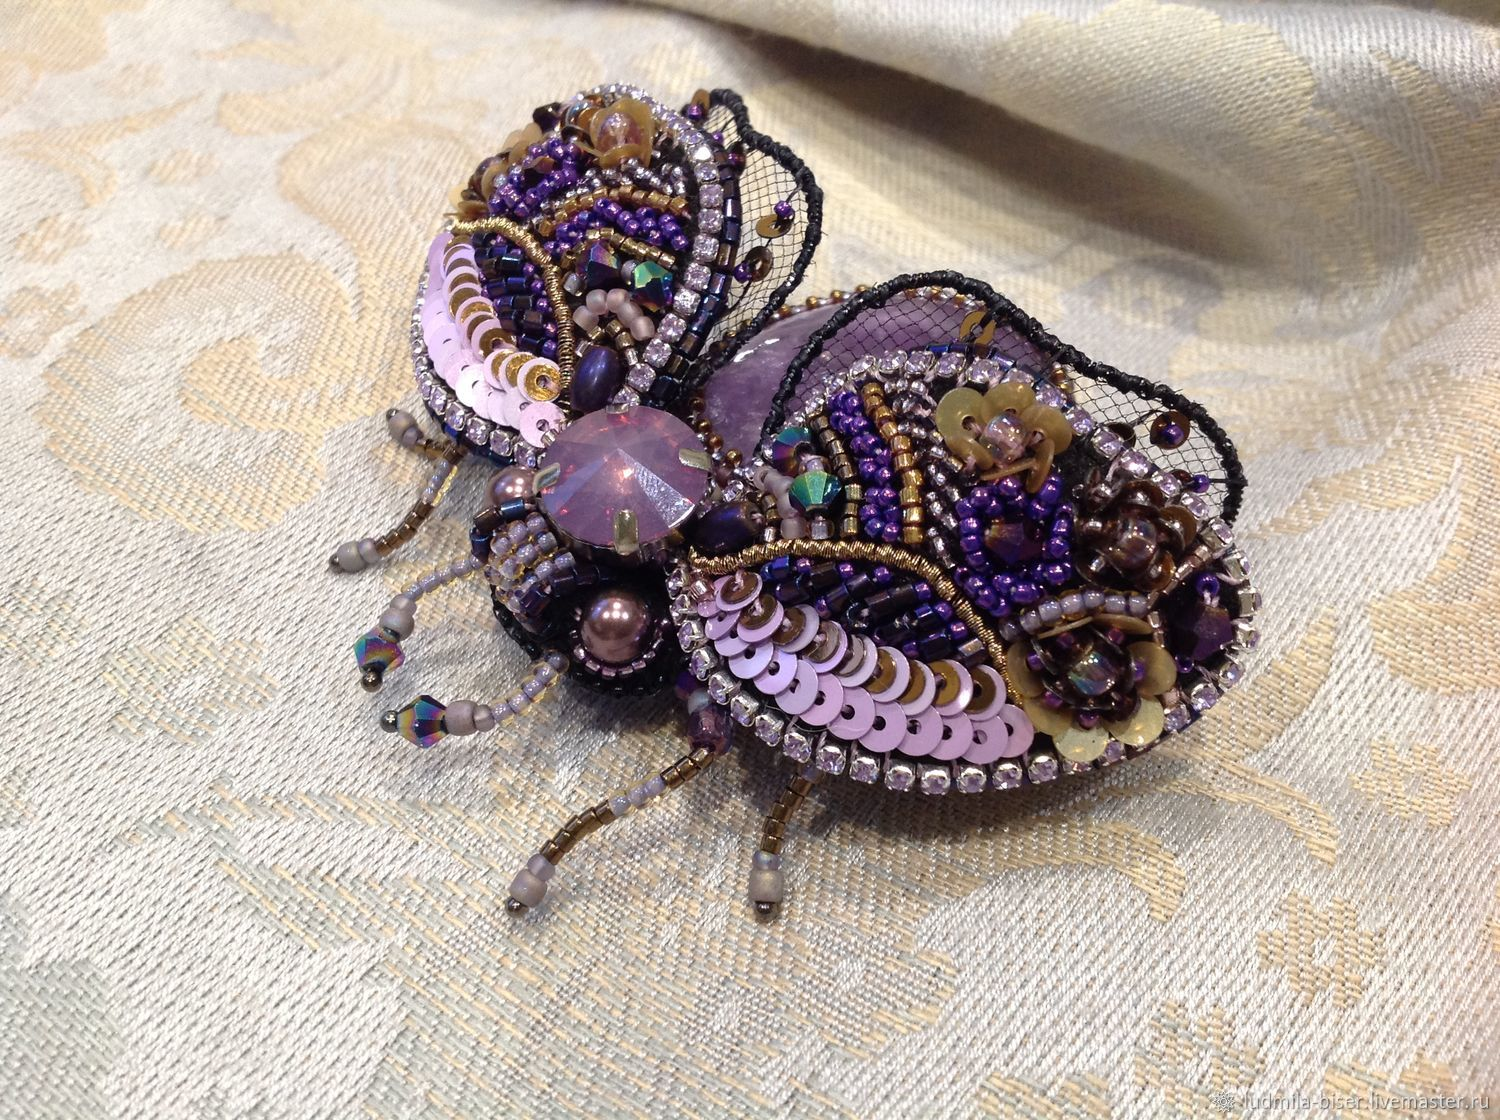 Brooch-pin: A beetle brooch with amethyst, Brooches, Moscow,  Фото №1